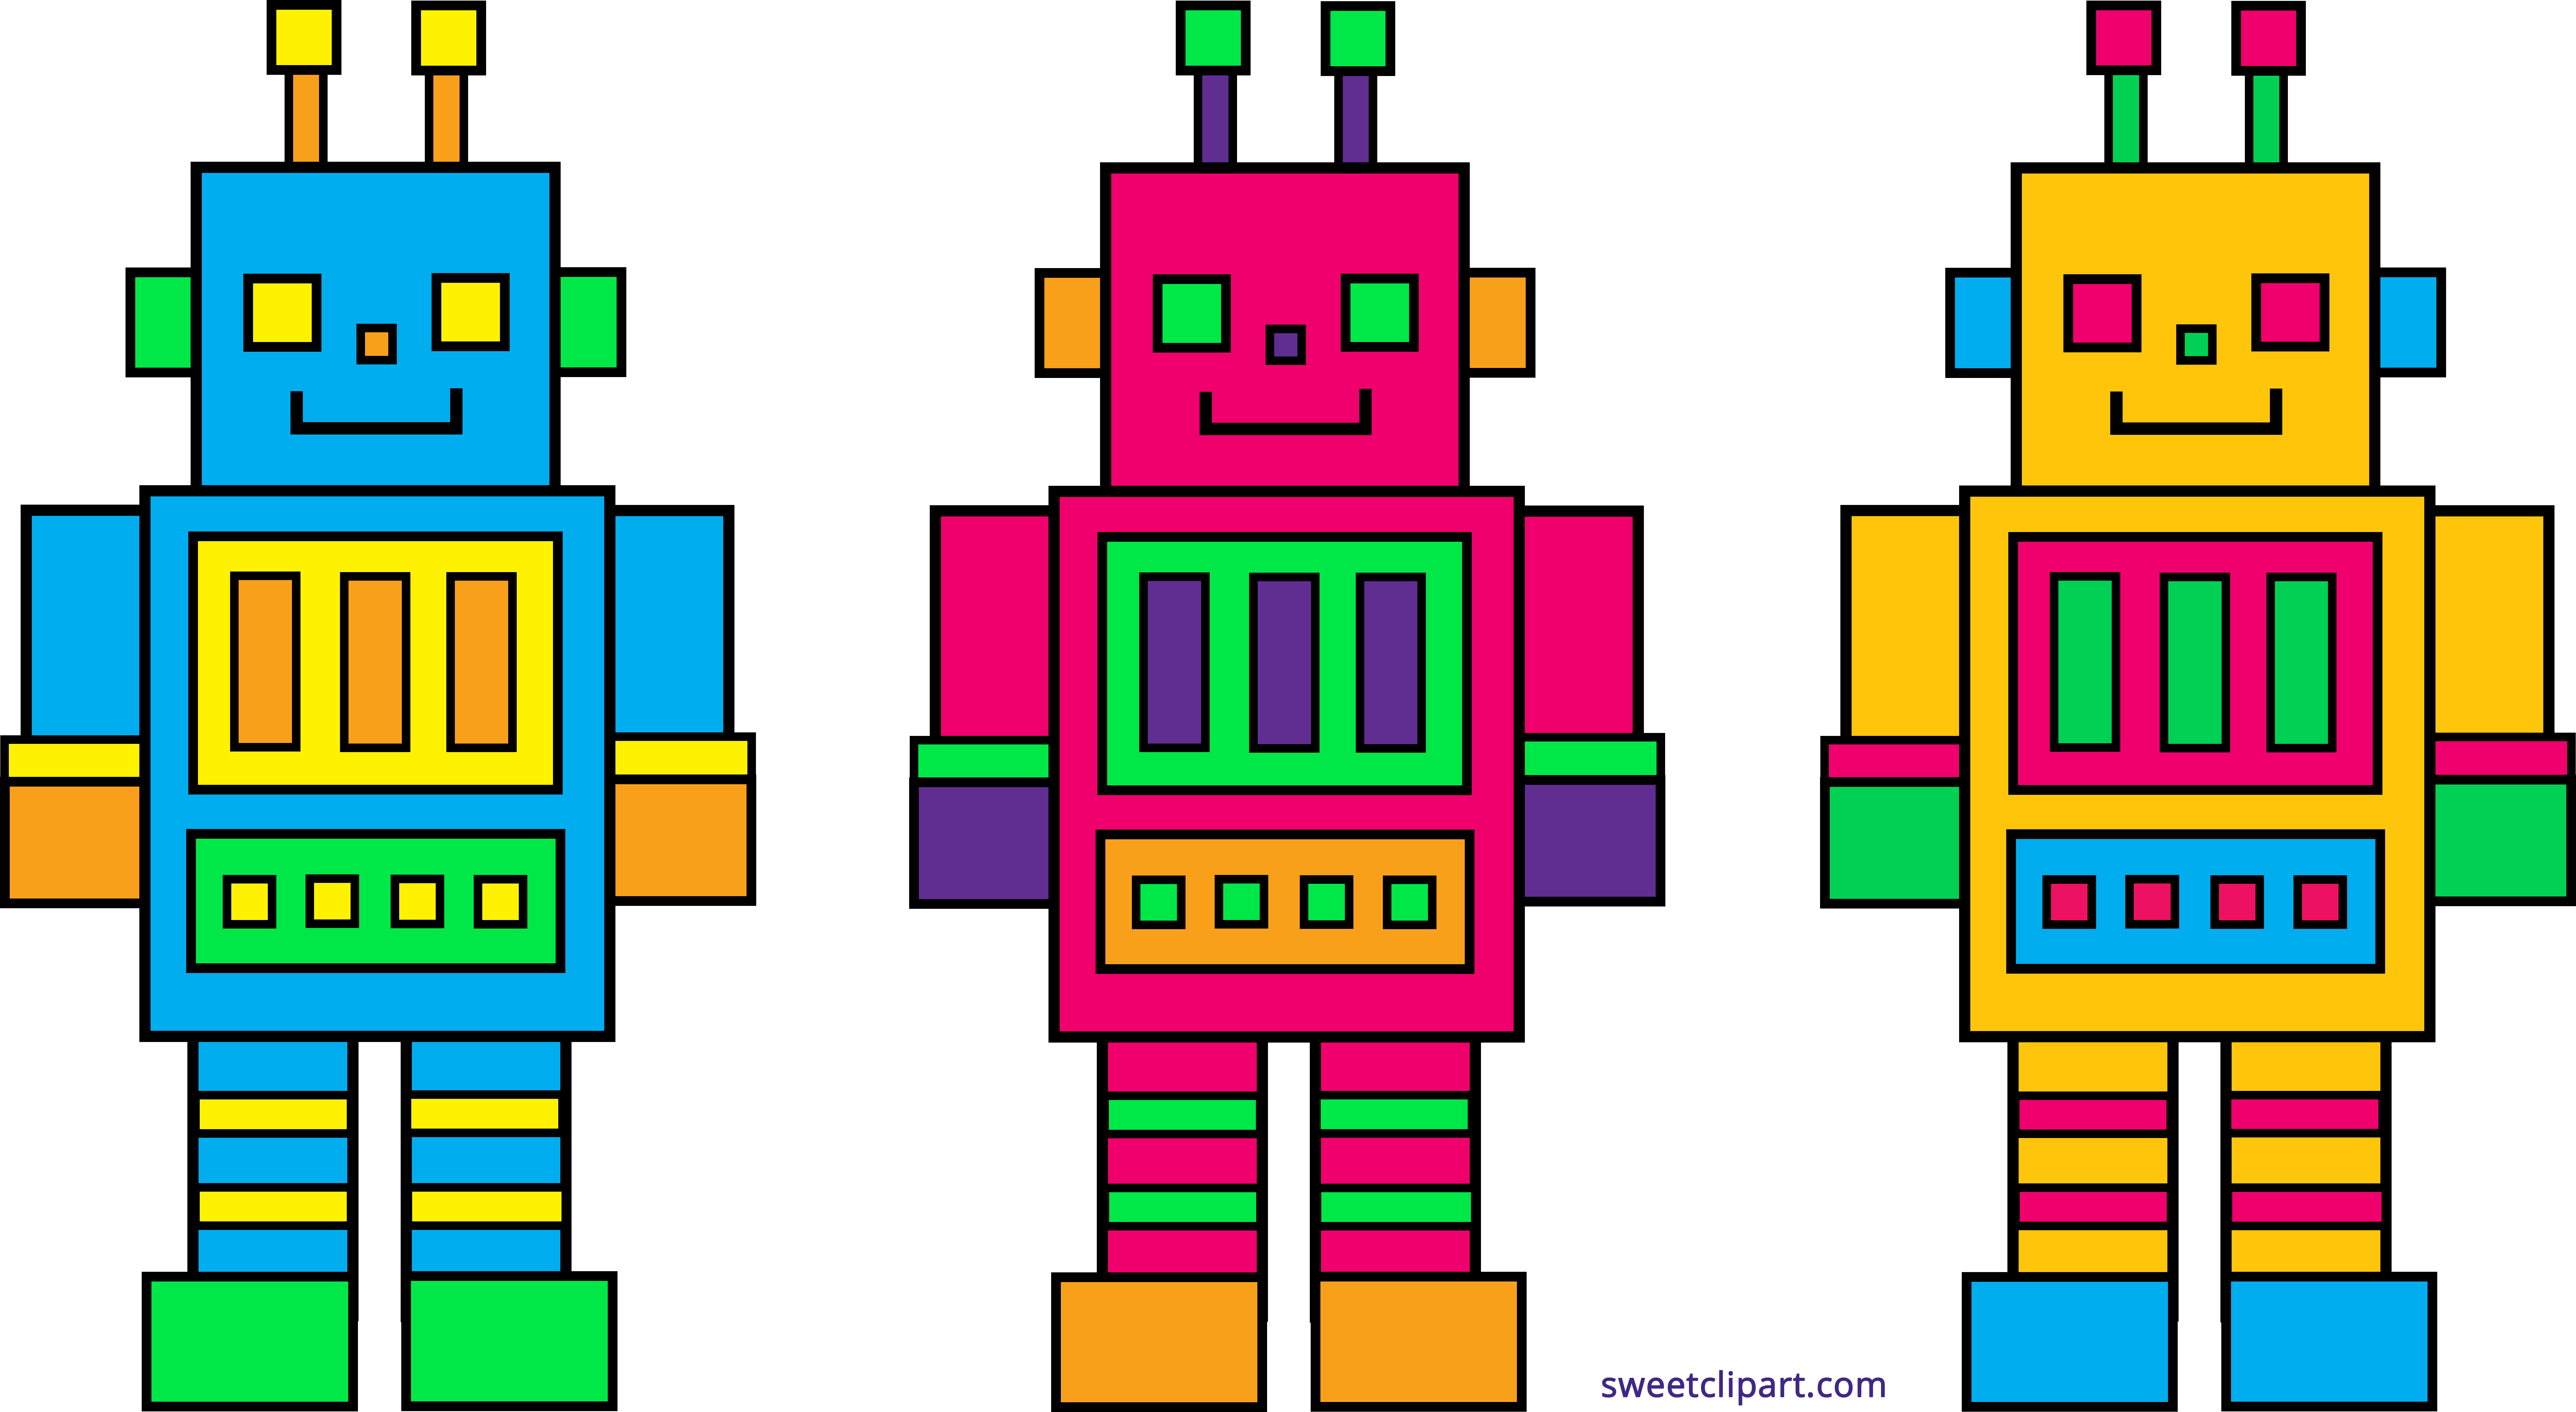 Party clipart robot. Three cute robots sweet